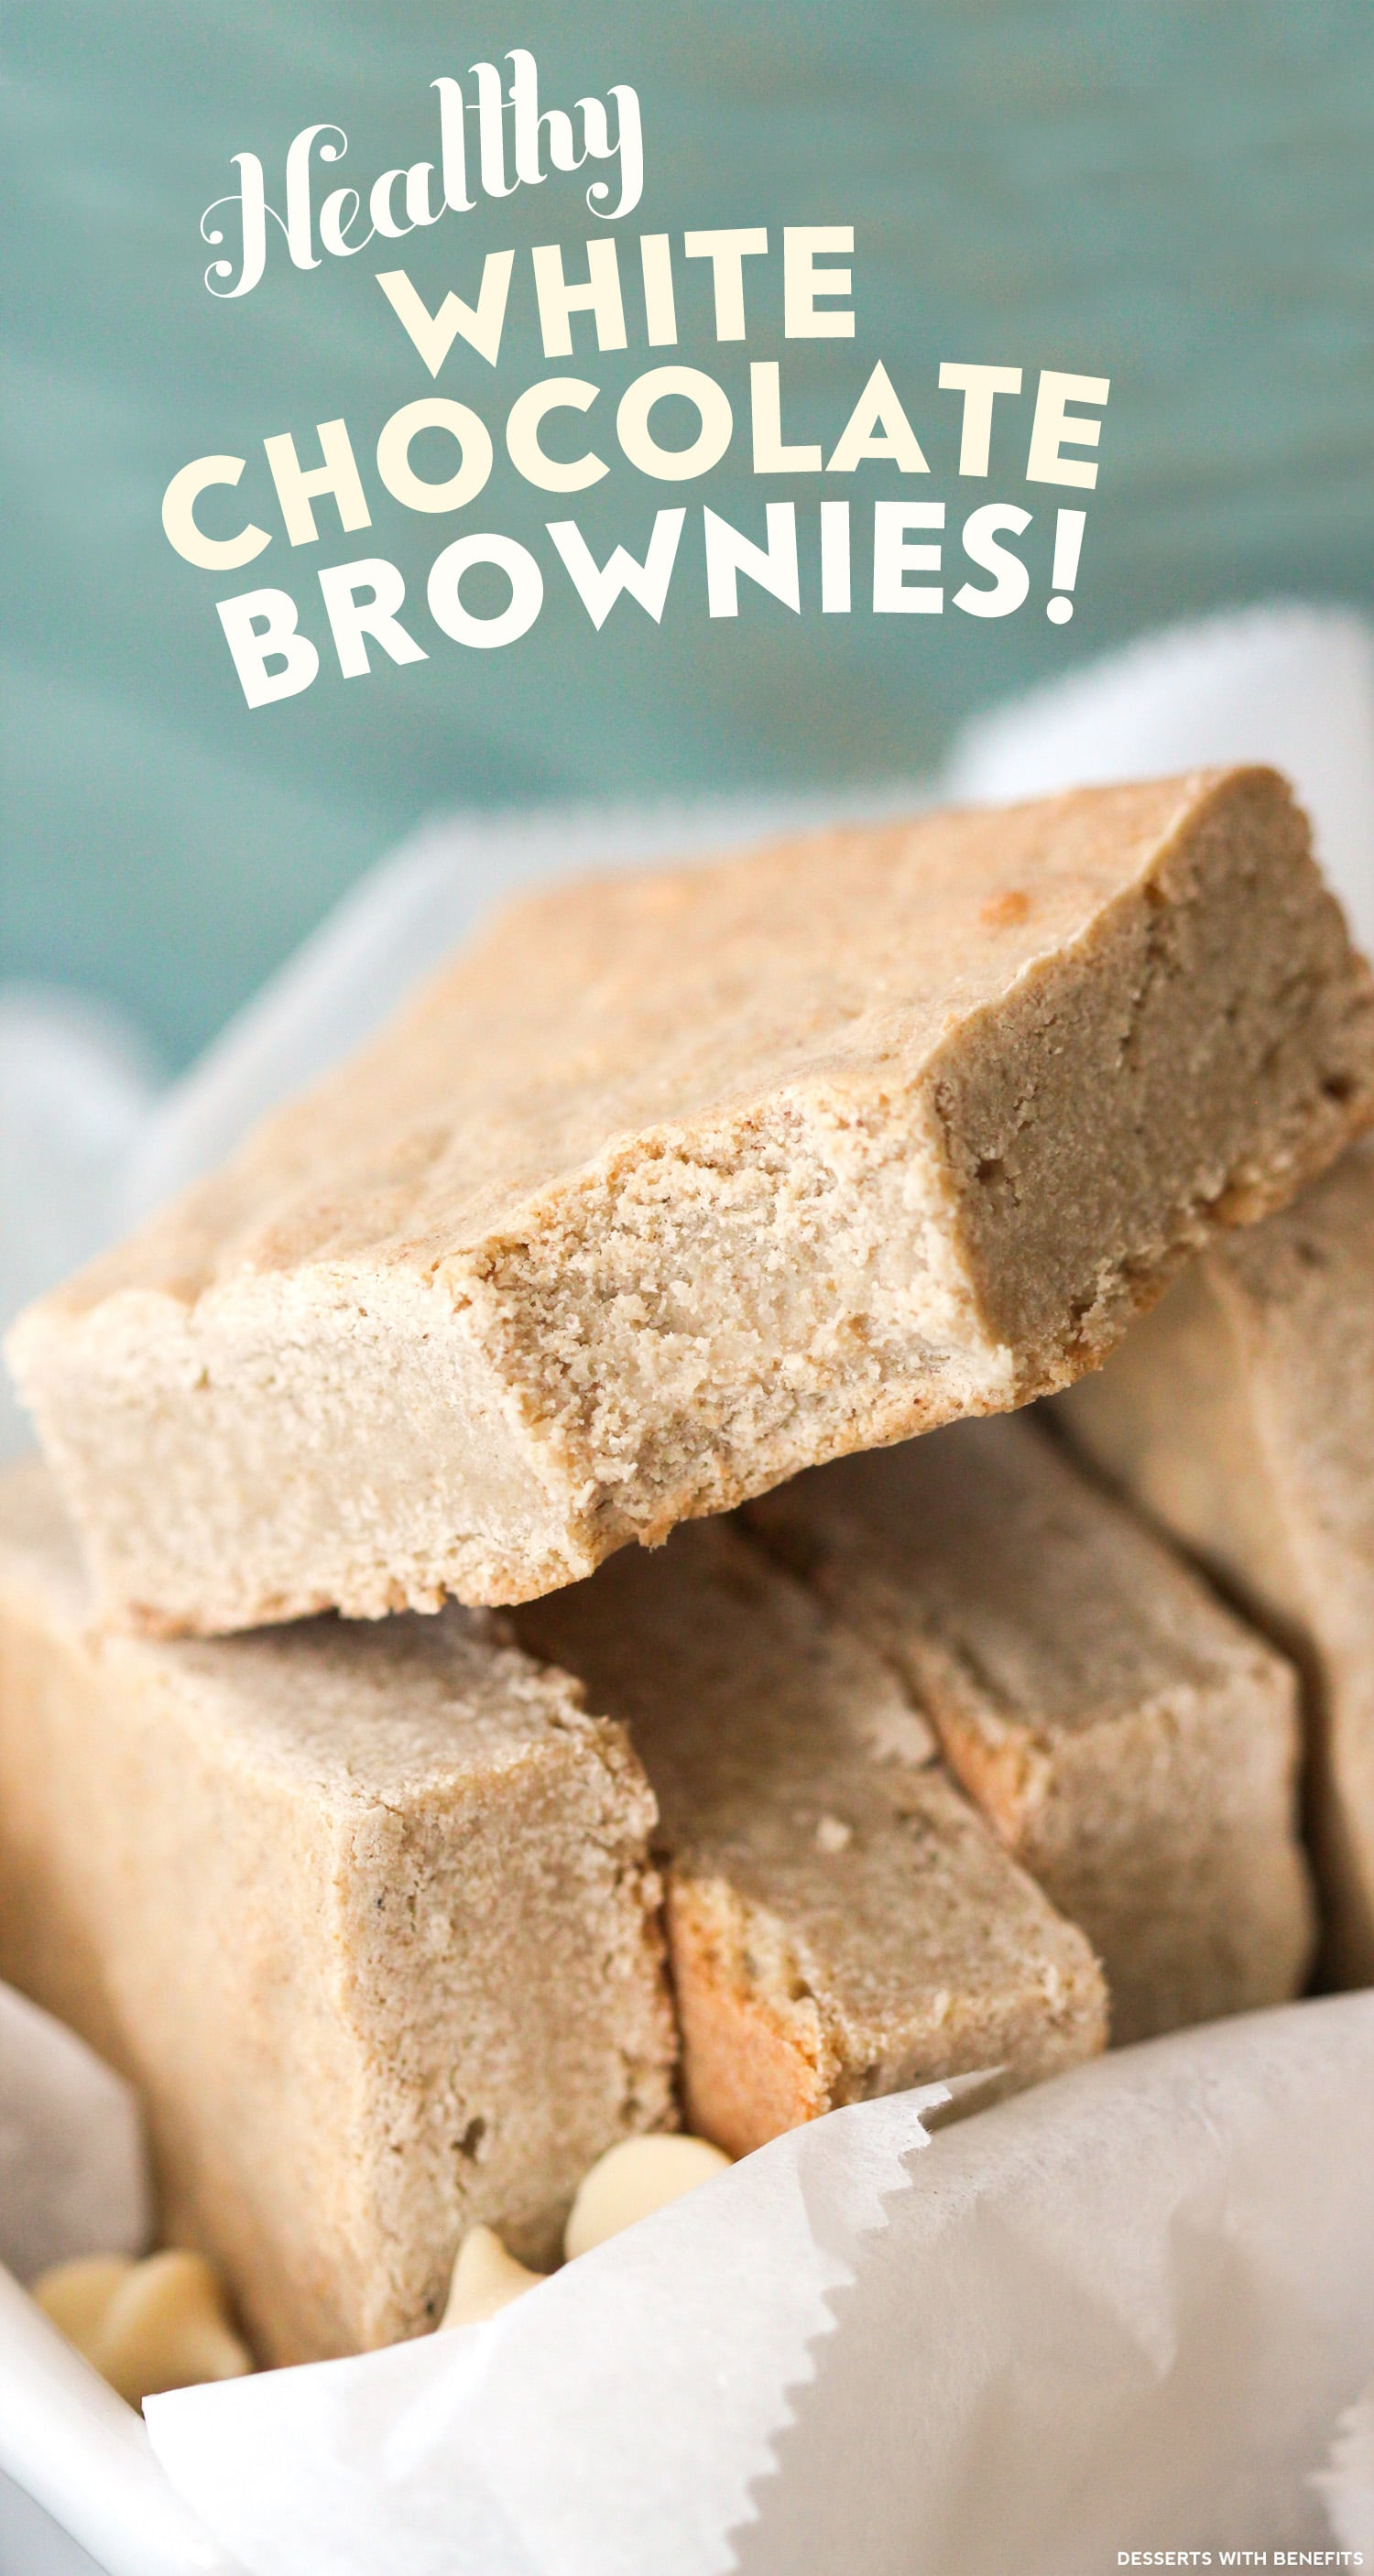 Healthy White Chocolate Brownies (sugar free, gluten free, dairy free, eggless, vegan) - Healthy Dessert Recipes at Desserts with Benefits